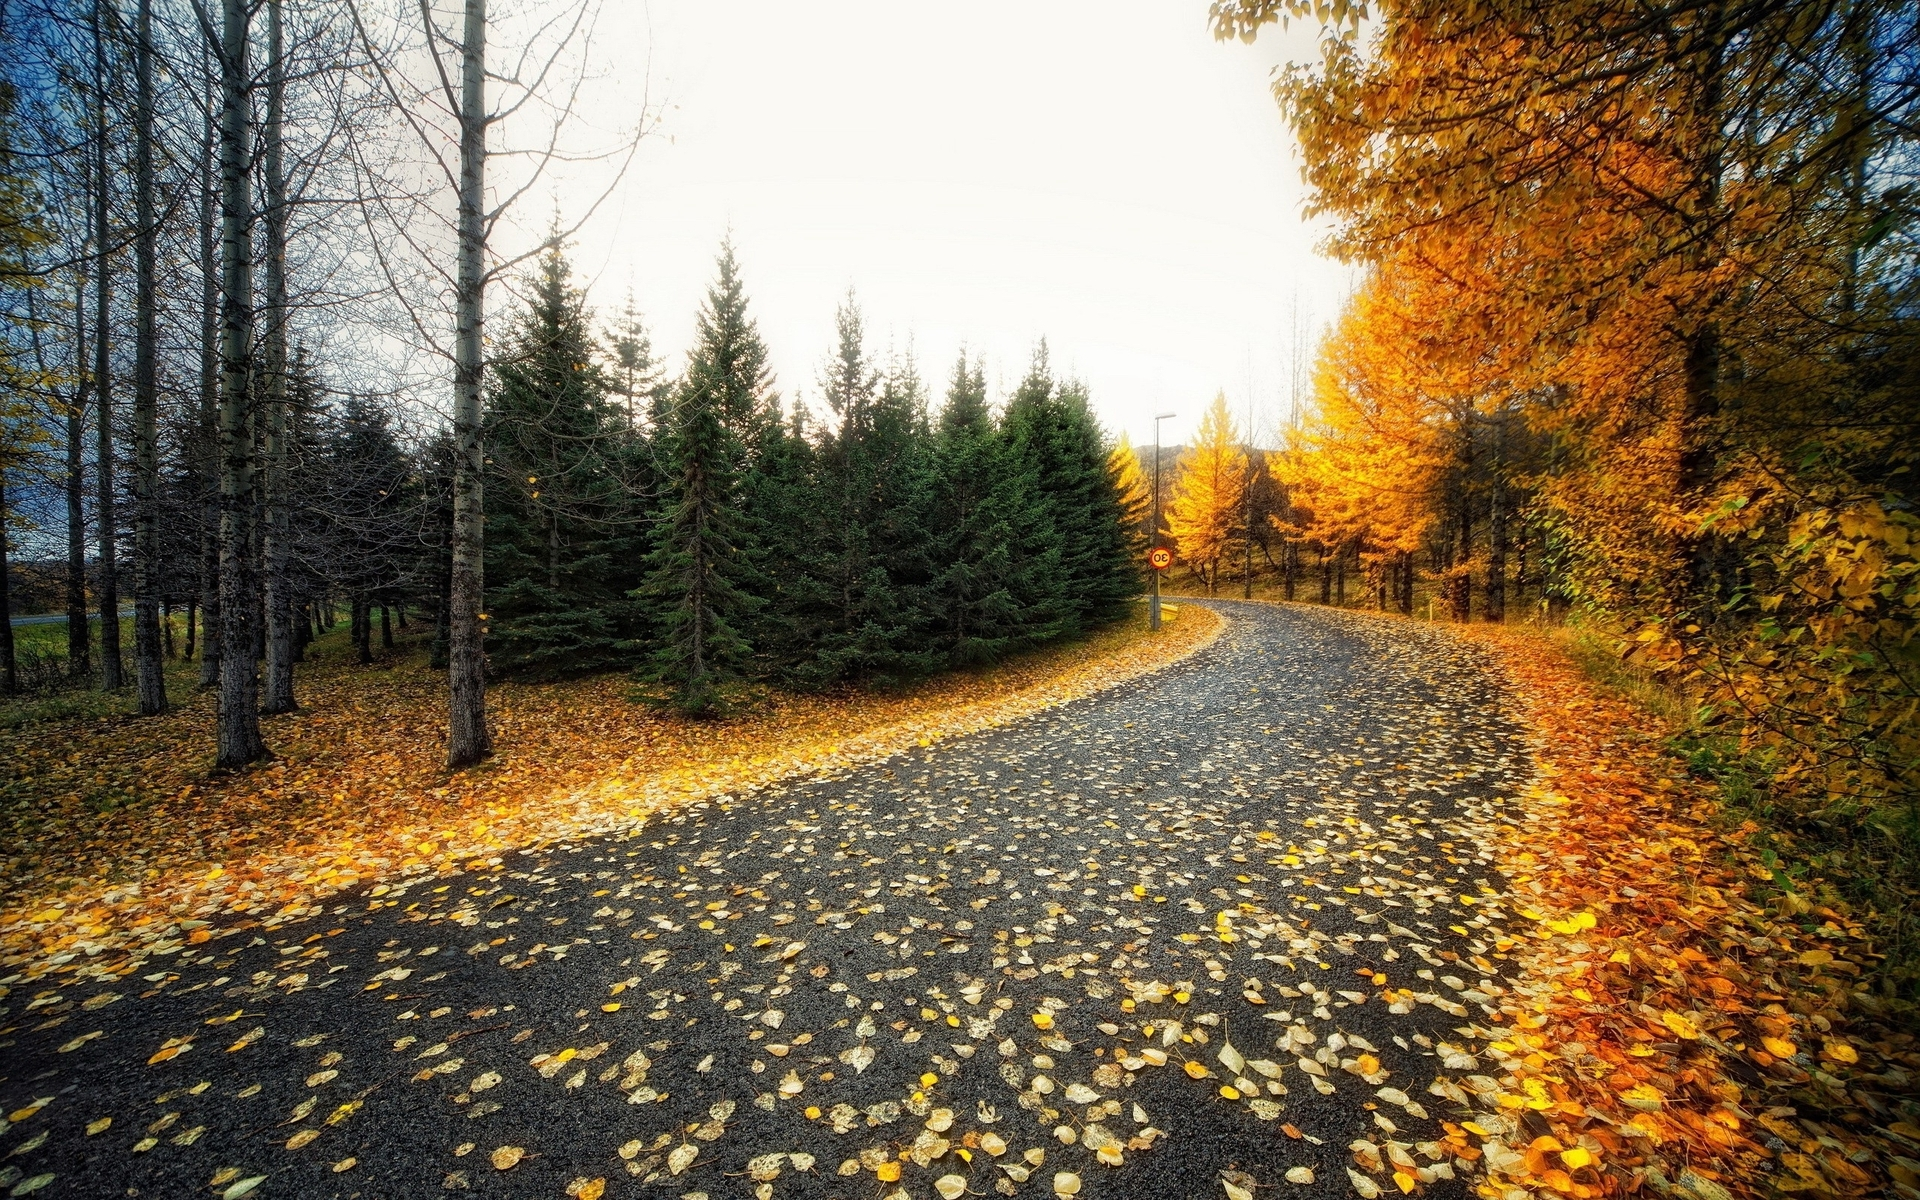 Canada Wallpaper Hd Iphone Calico Trees Nice Road Foliage Wallpapers Calico Trees